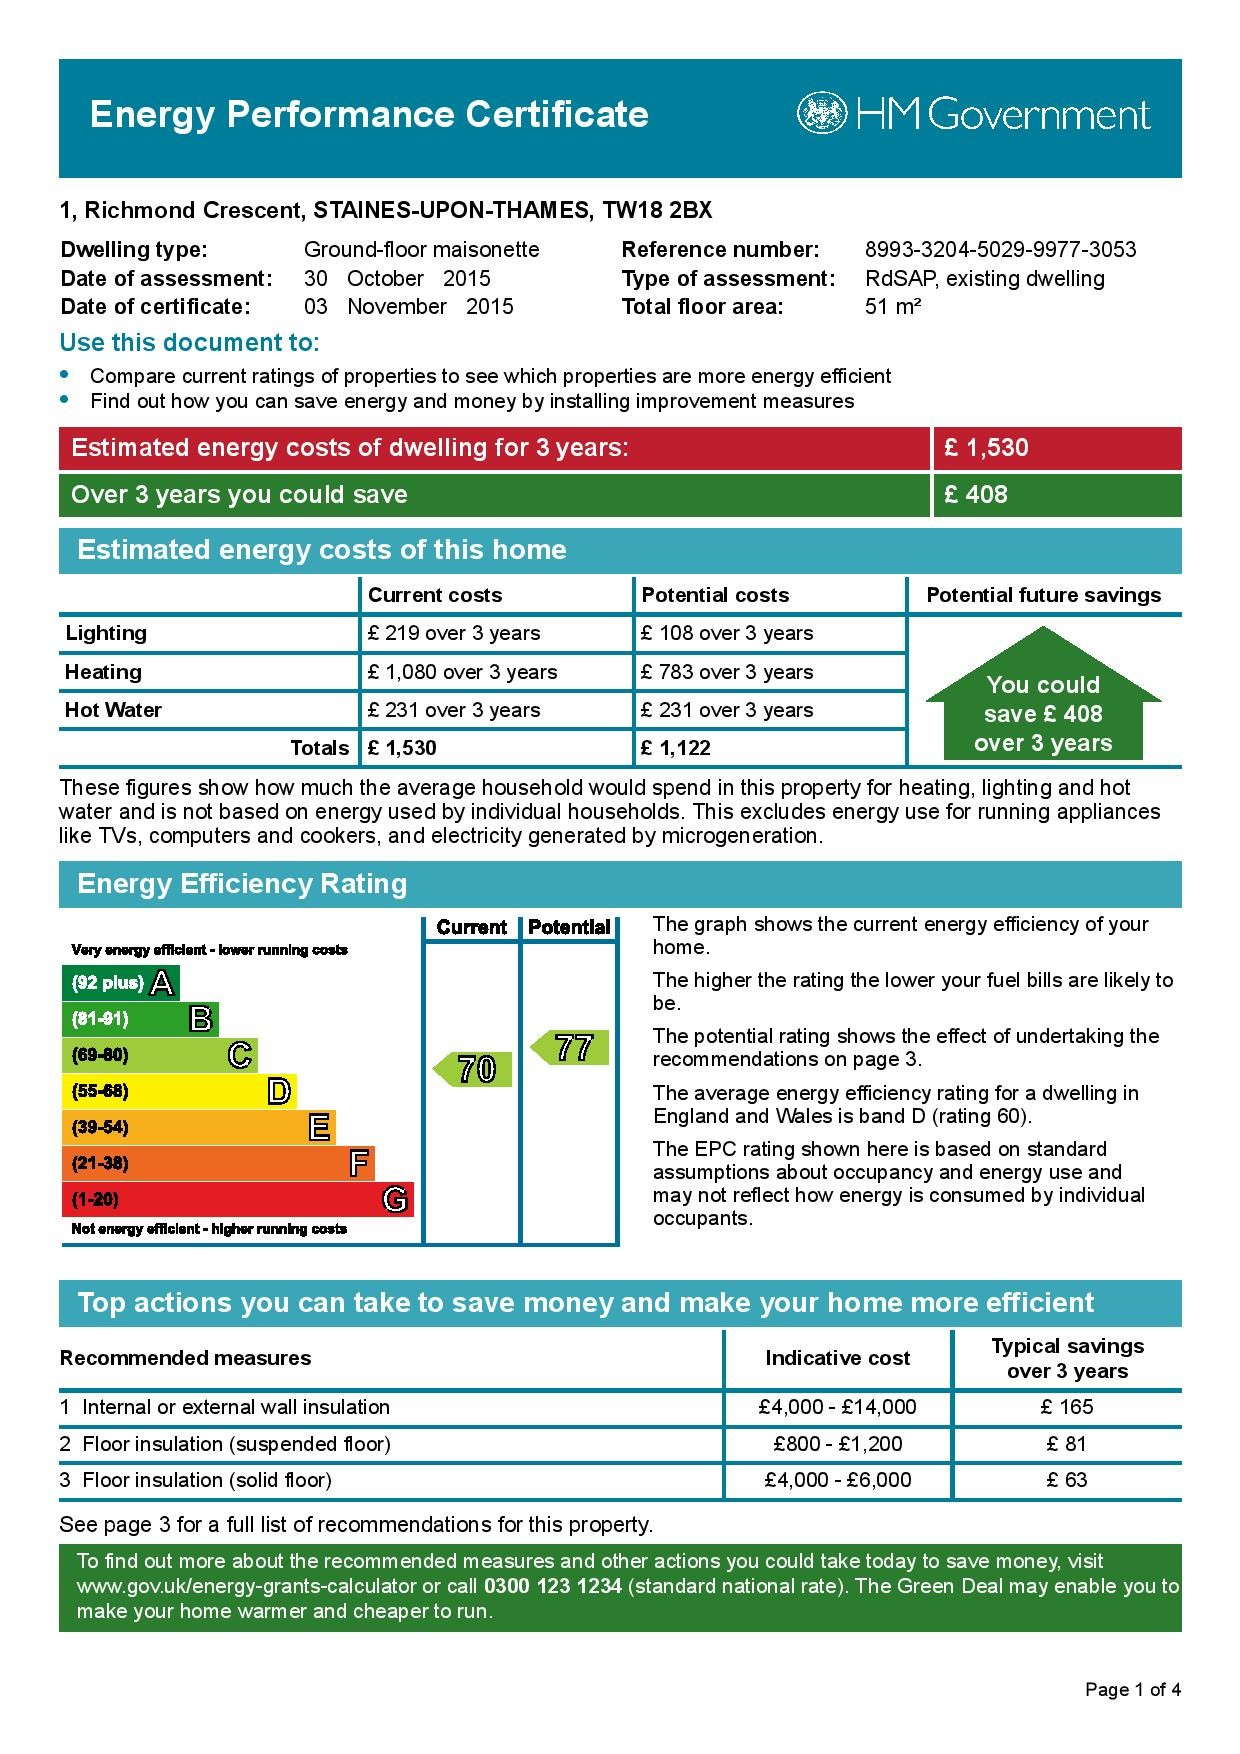 EPC Graph for 1 Richmond Crescent, Staines-Upon-Thames, Middlesex, TW18 2BX